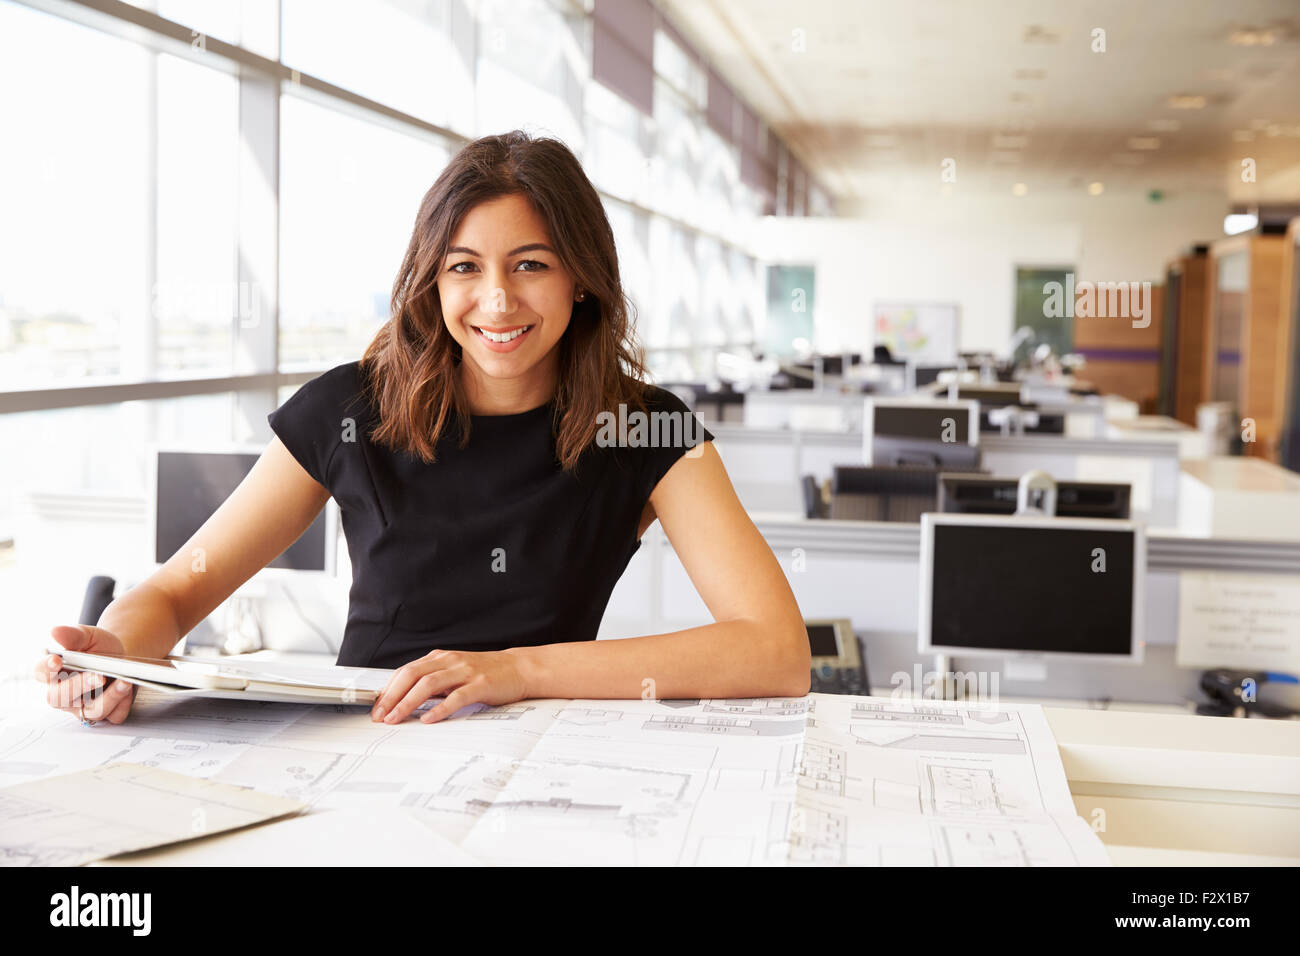 Young female architect working with computer and blueprints - Stock Image